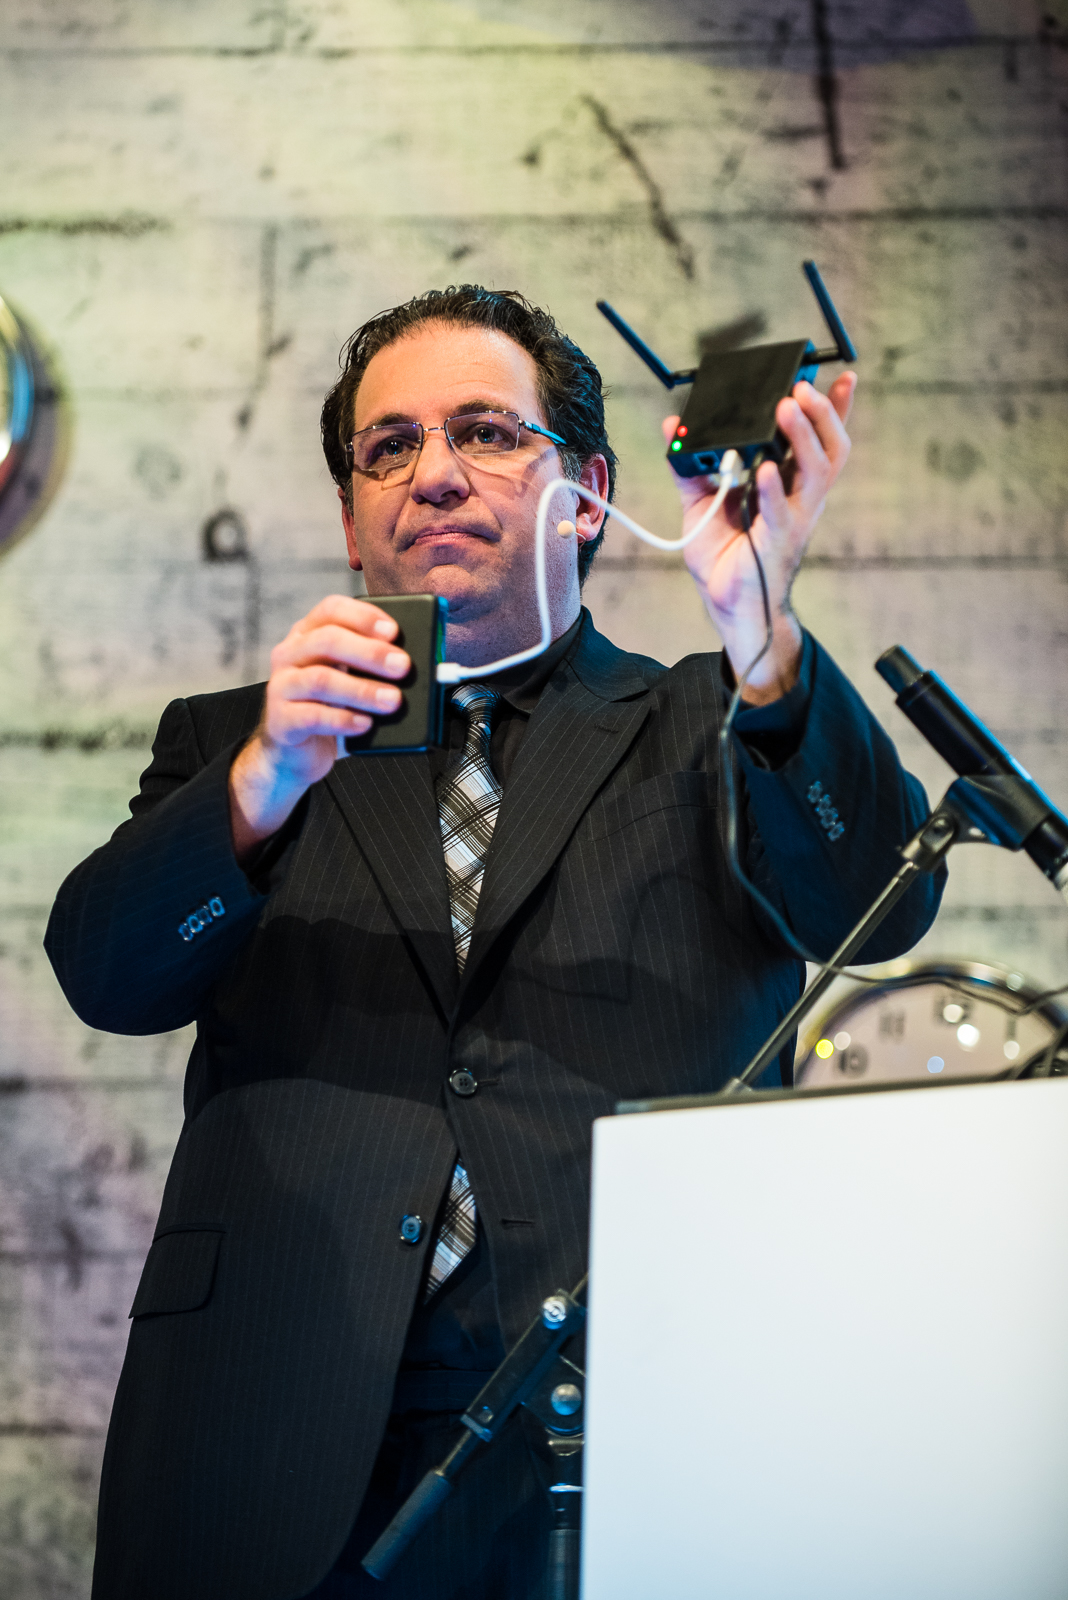 Kevin-Mitnick-Stage-Shot-1-High-Resolution